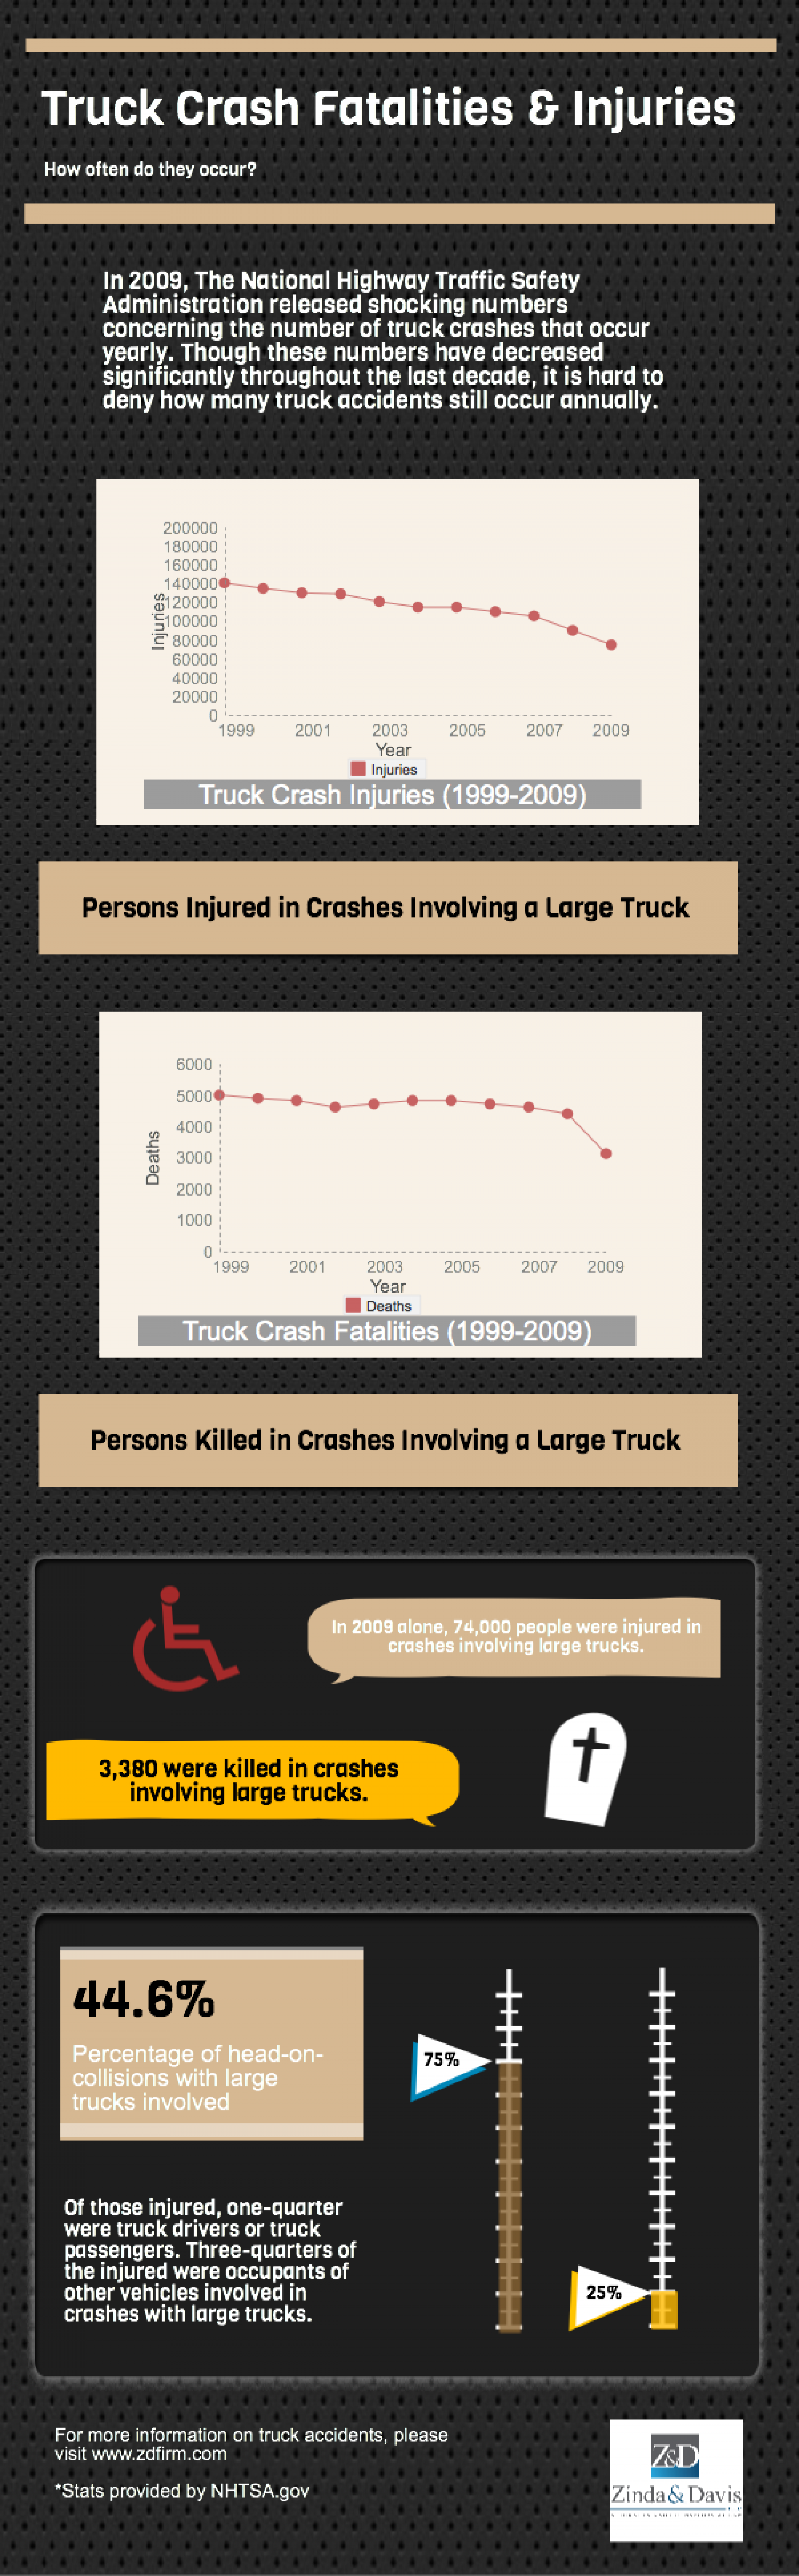 Truck Crash Fatalities & Injuries  Infographic